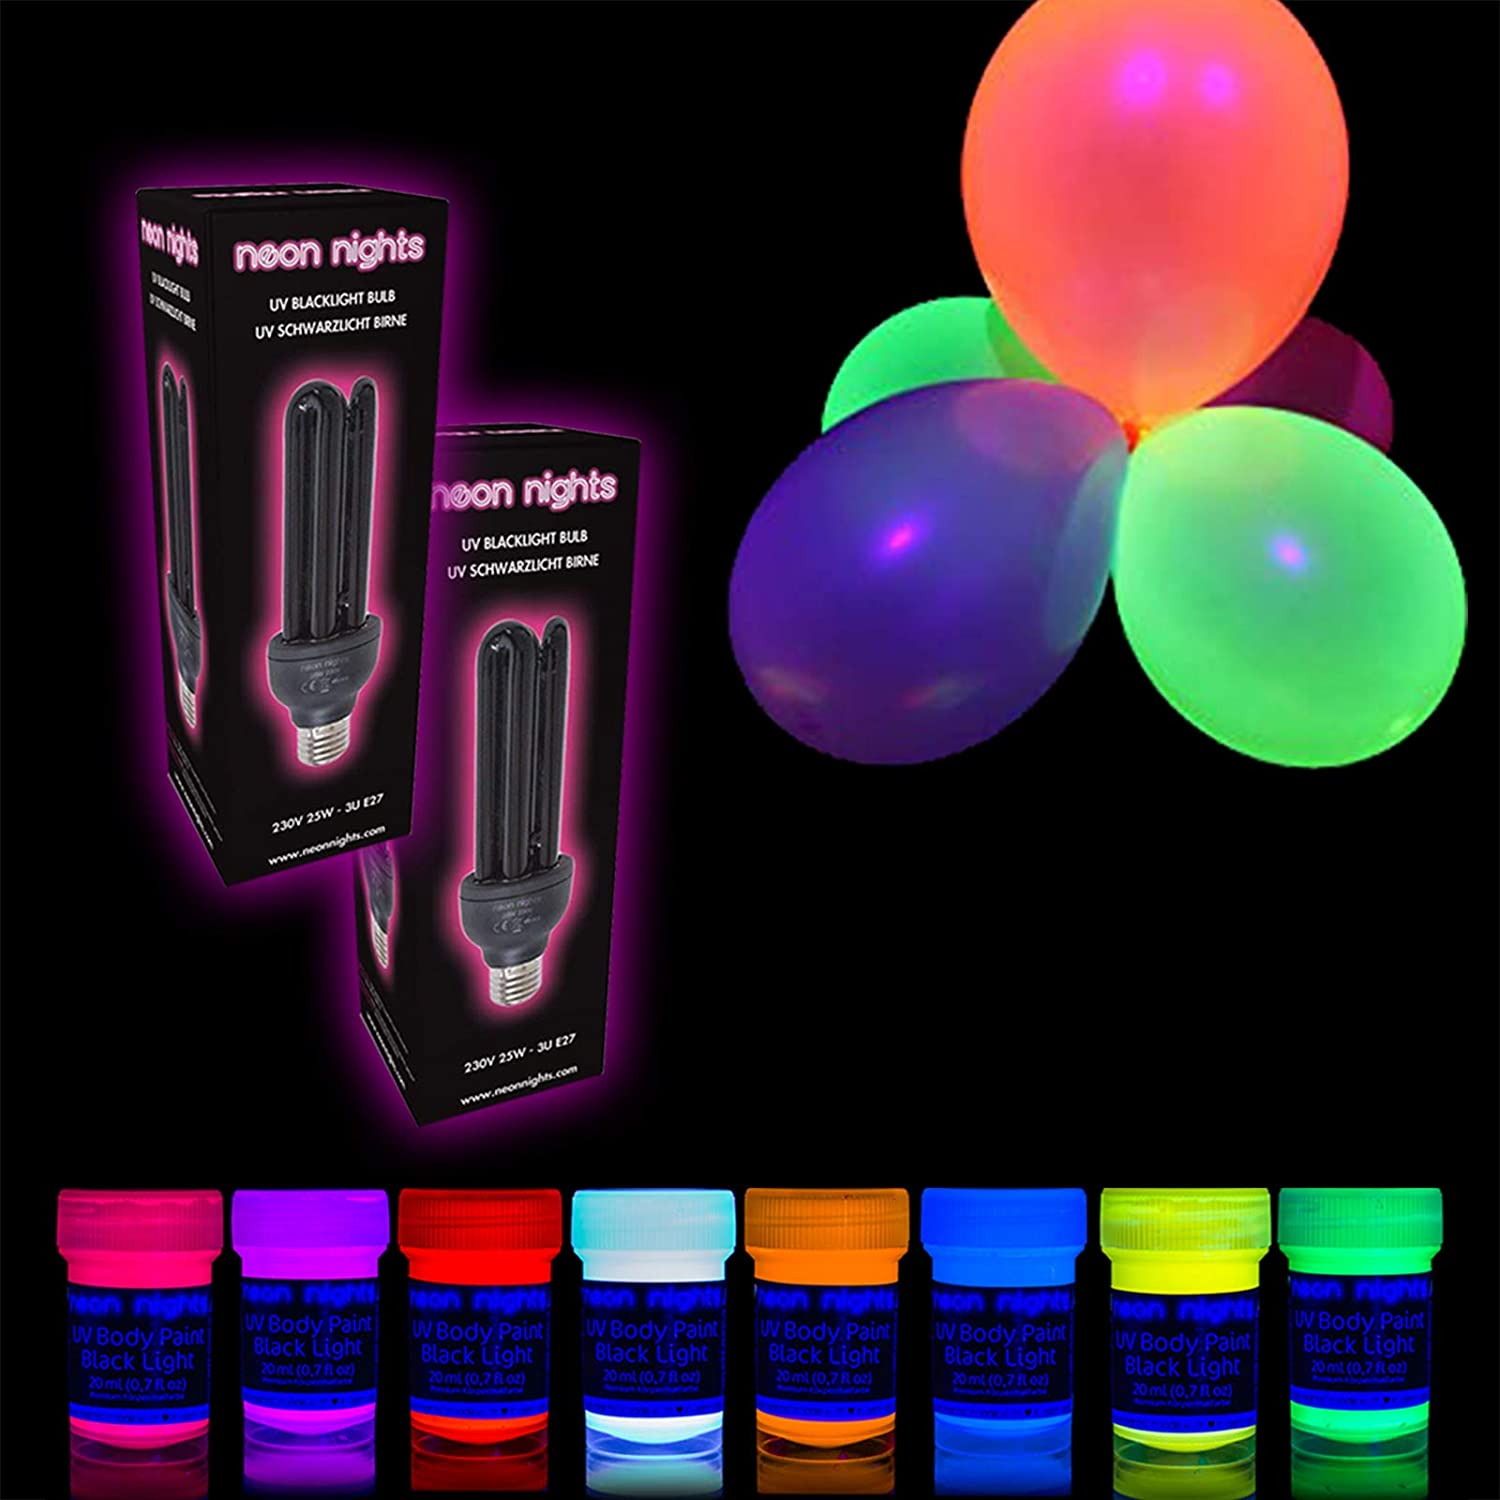 Black Light Bulbs Blacklight Decoration Box Party Set neon nights Fun-Pack 65 pieces with UV Body Paint T-Shirts Fabric Glow Paints Brushes XL